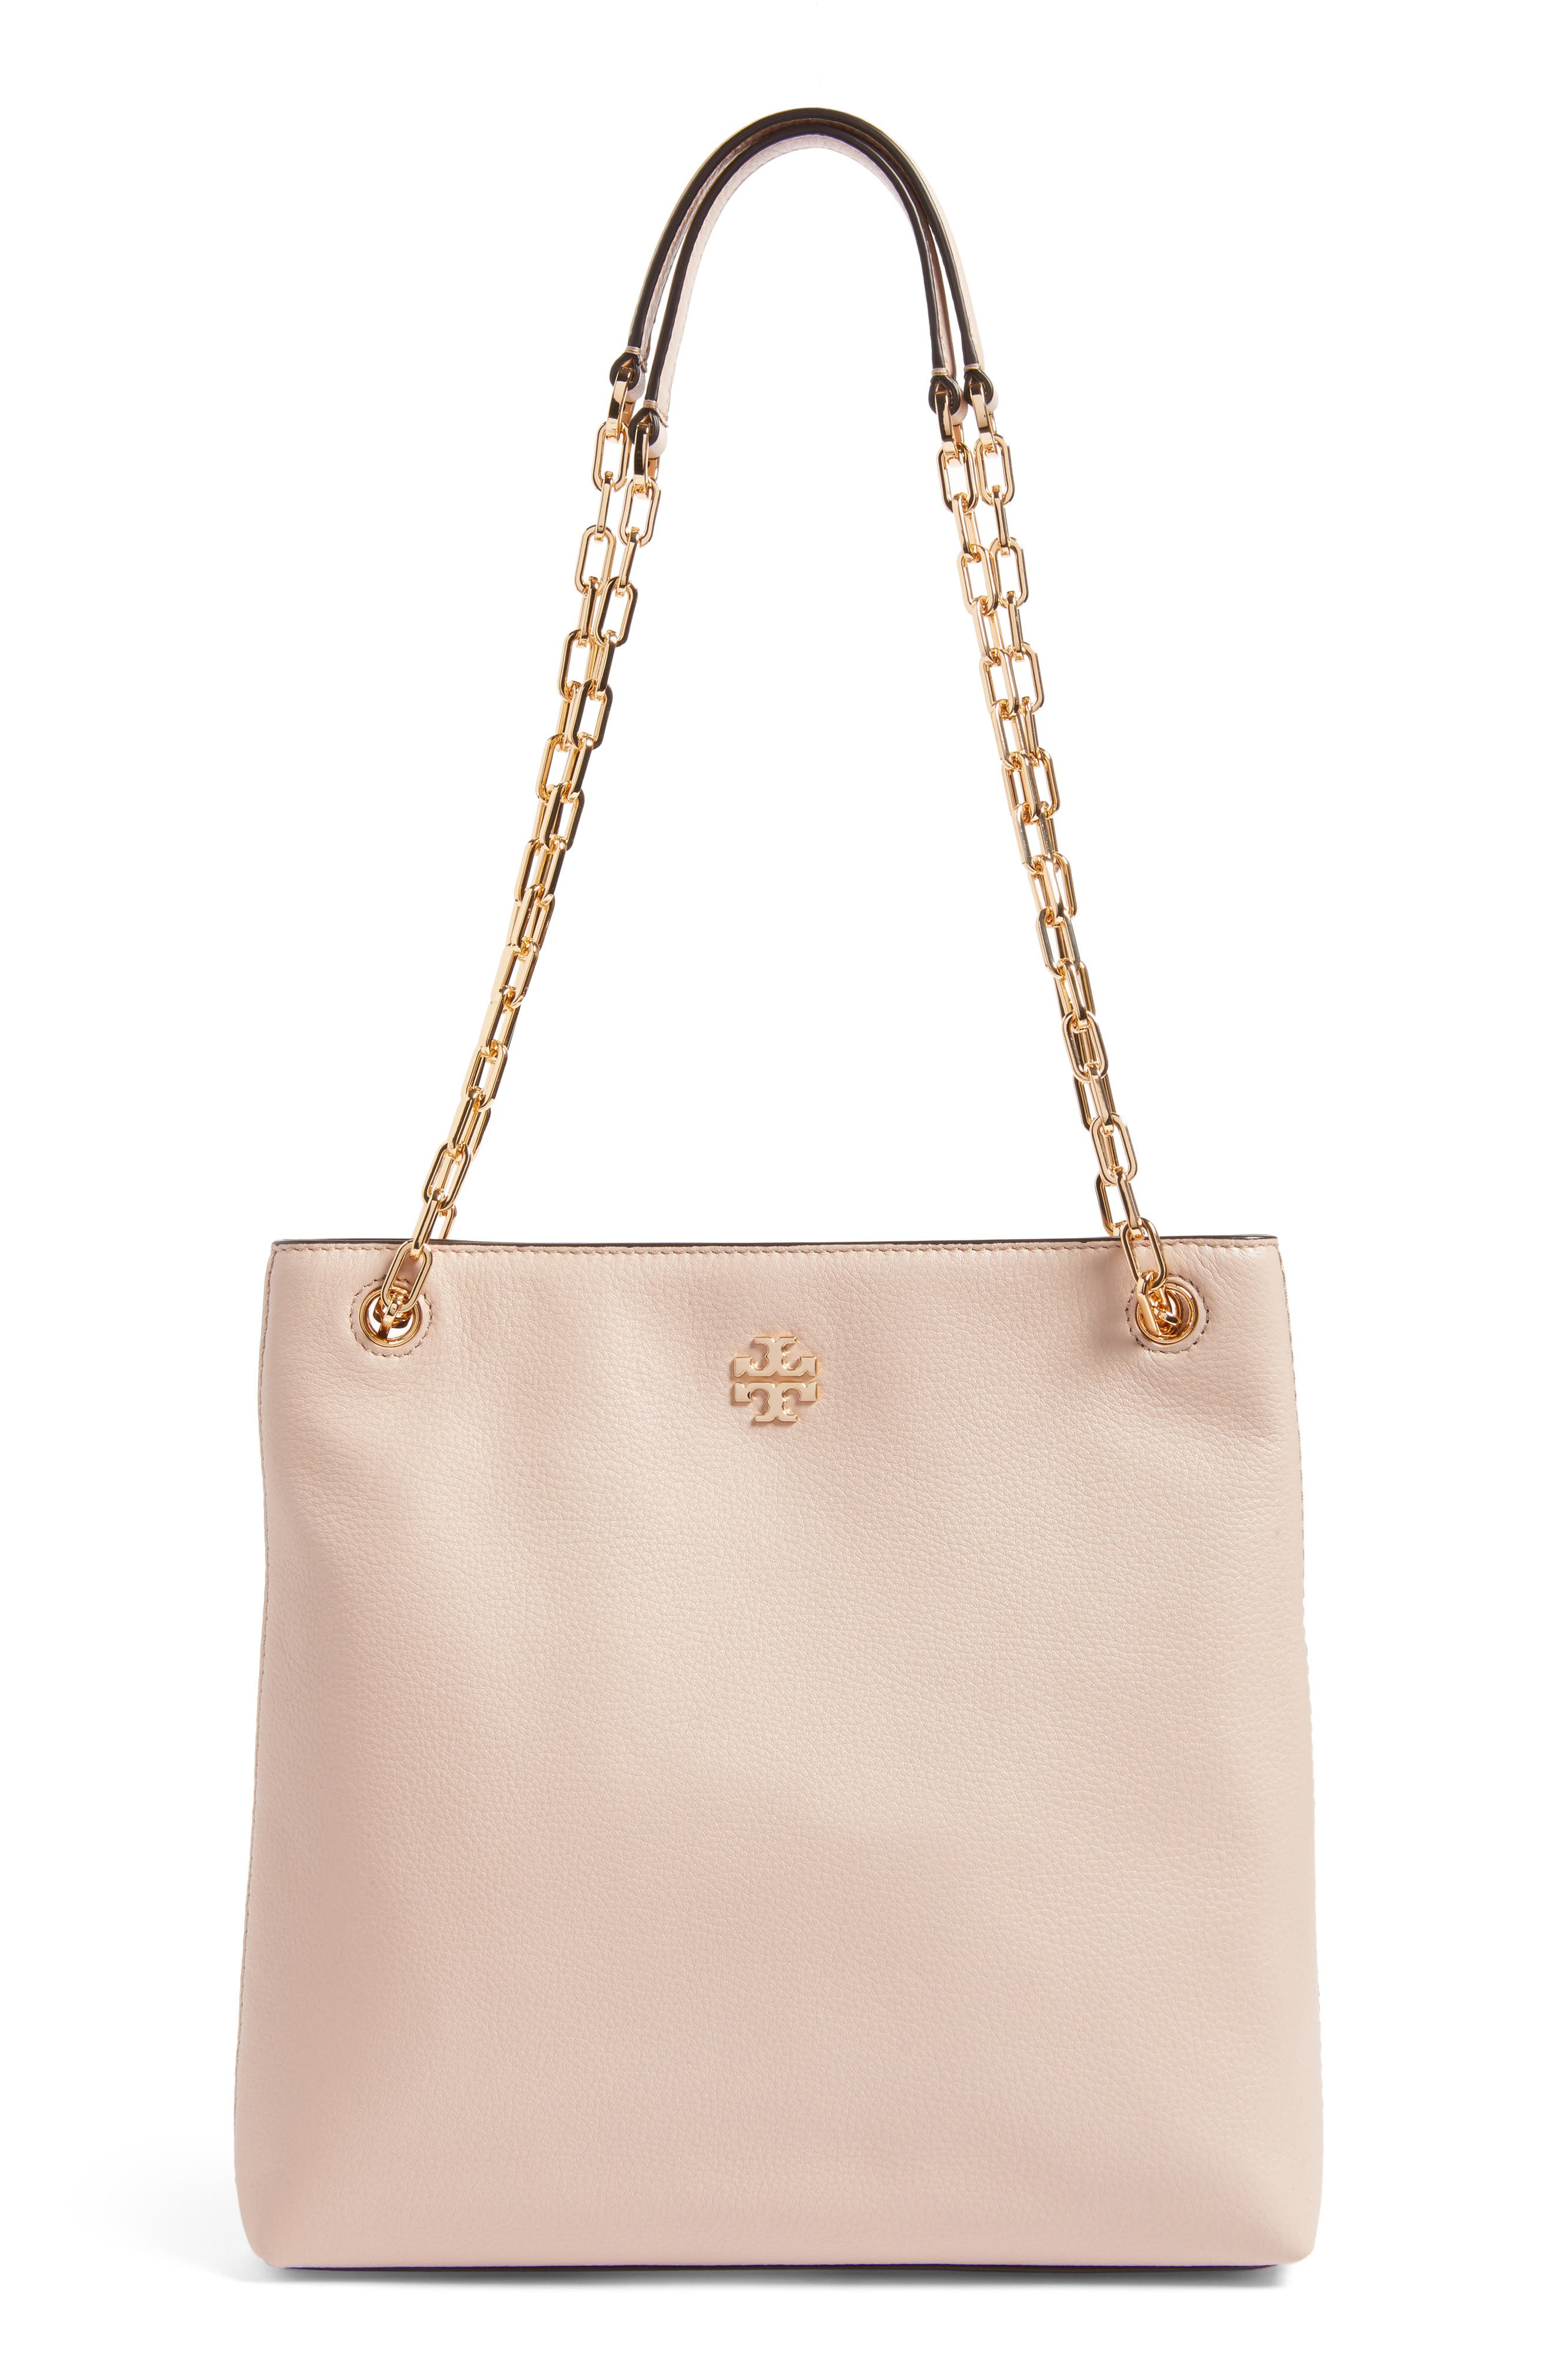 Alternate Image 1 Selected - Tory Burch Frida Swingpack Leather Crossbody Bag (Nordstrom Exclusive)